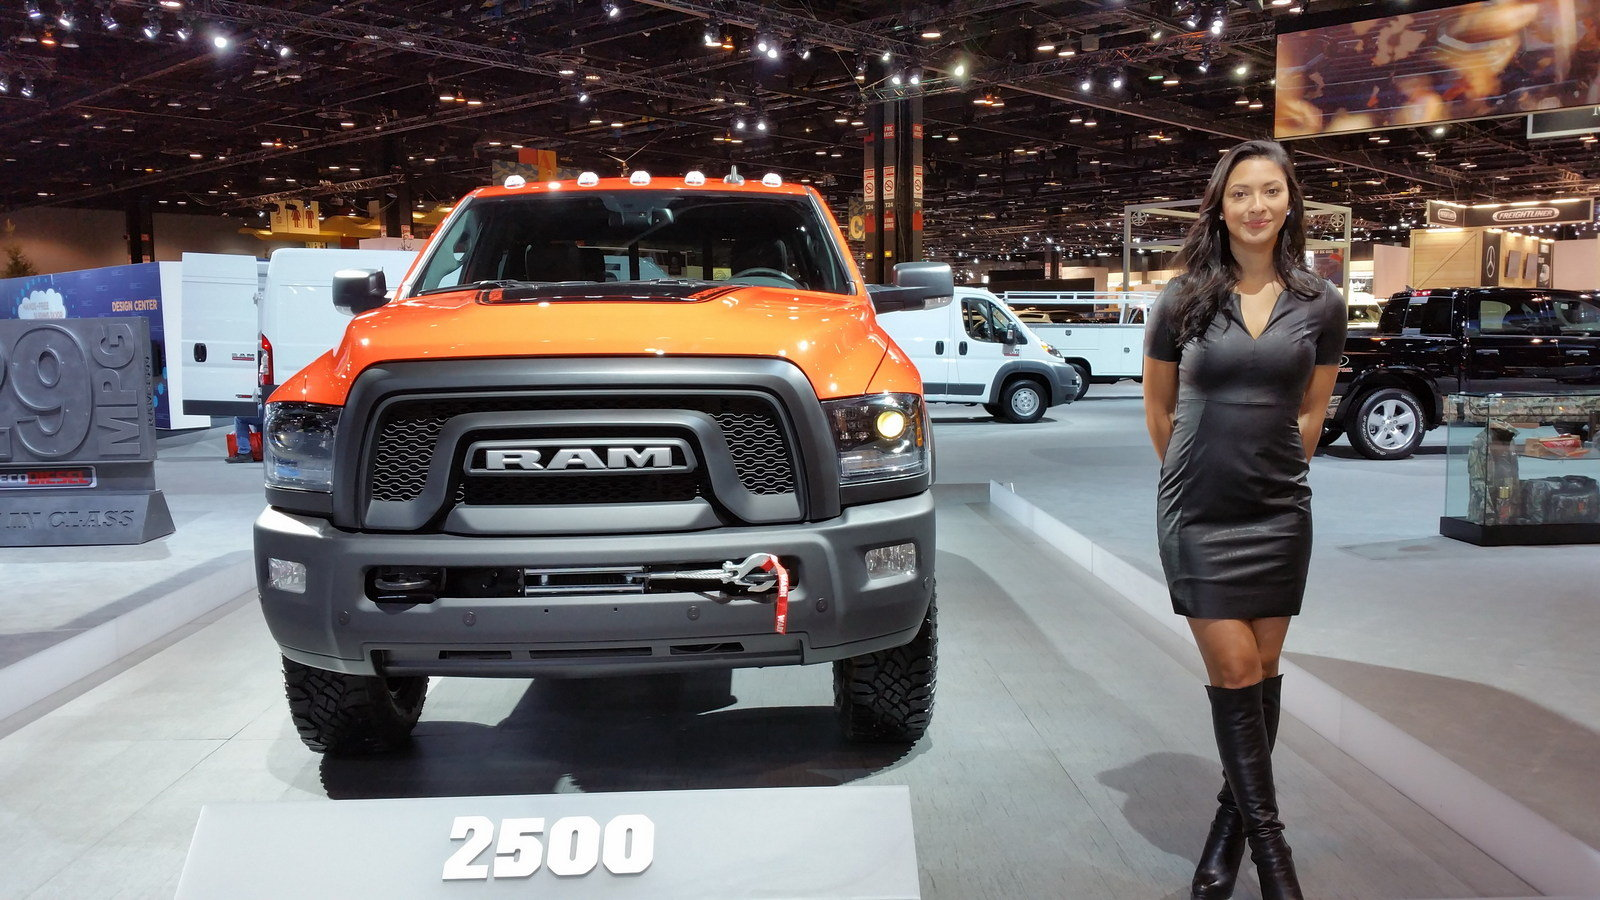 2017 ram power wagon picture 666323 truck review top speed. Black Bedroom Furniture Sets. Home Design Ideas